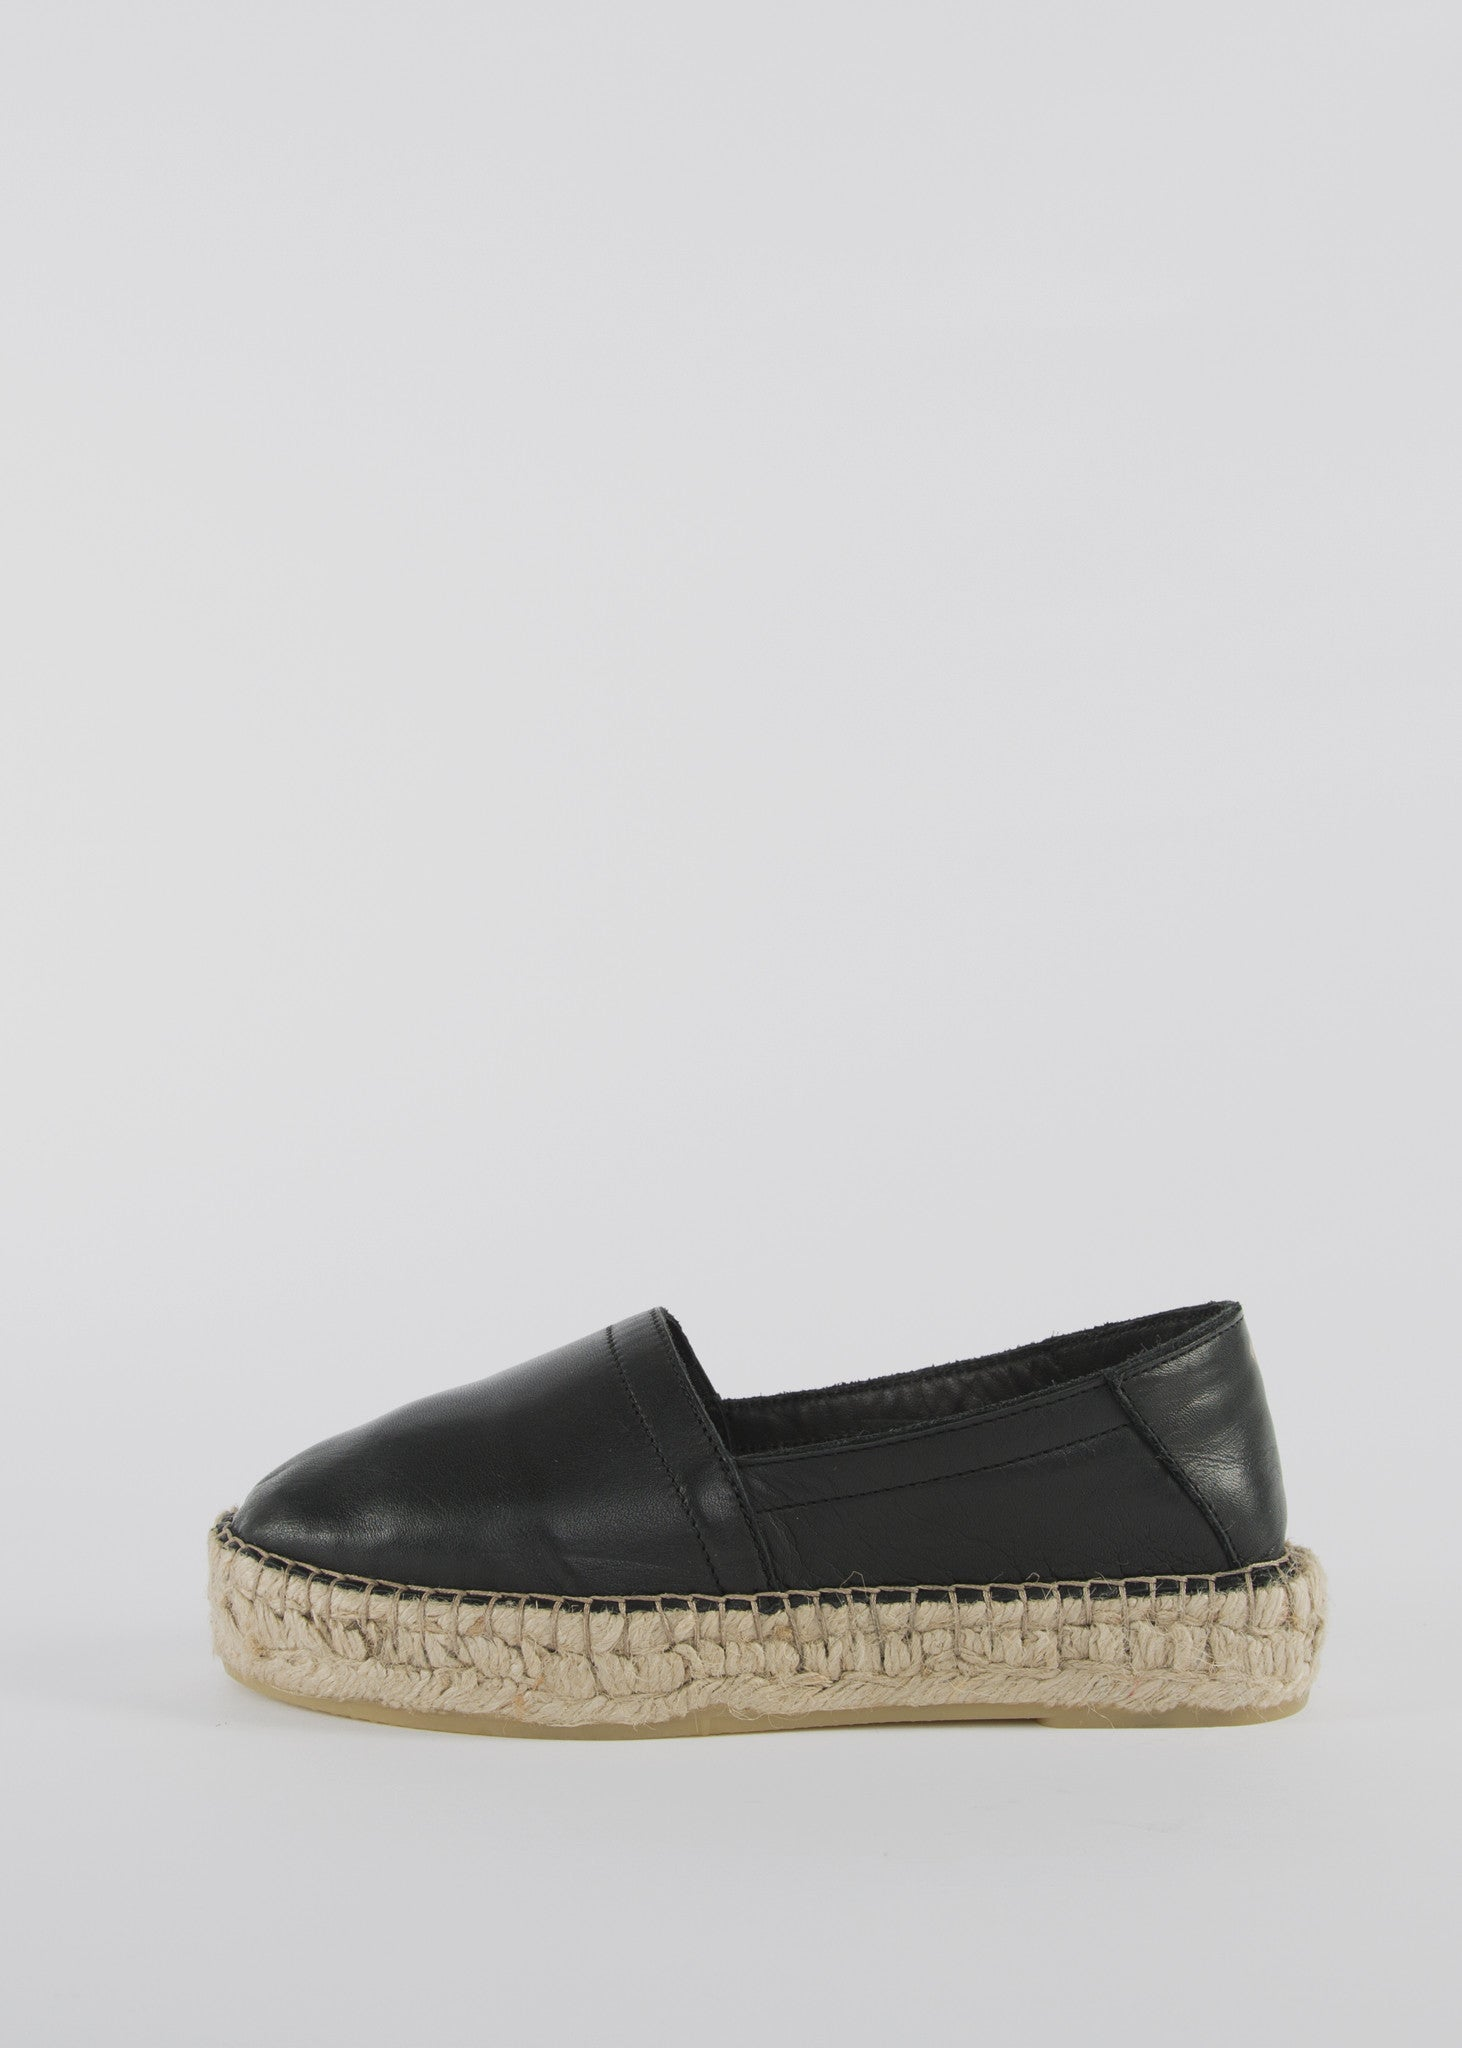 Wayfarer Espadril Shoes Black